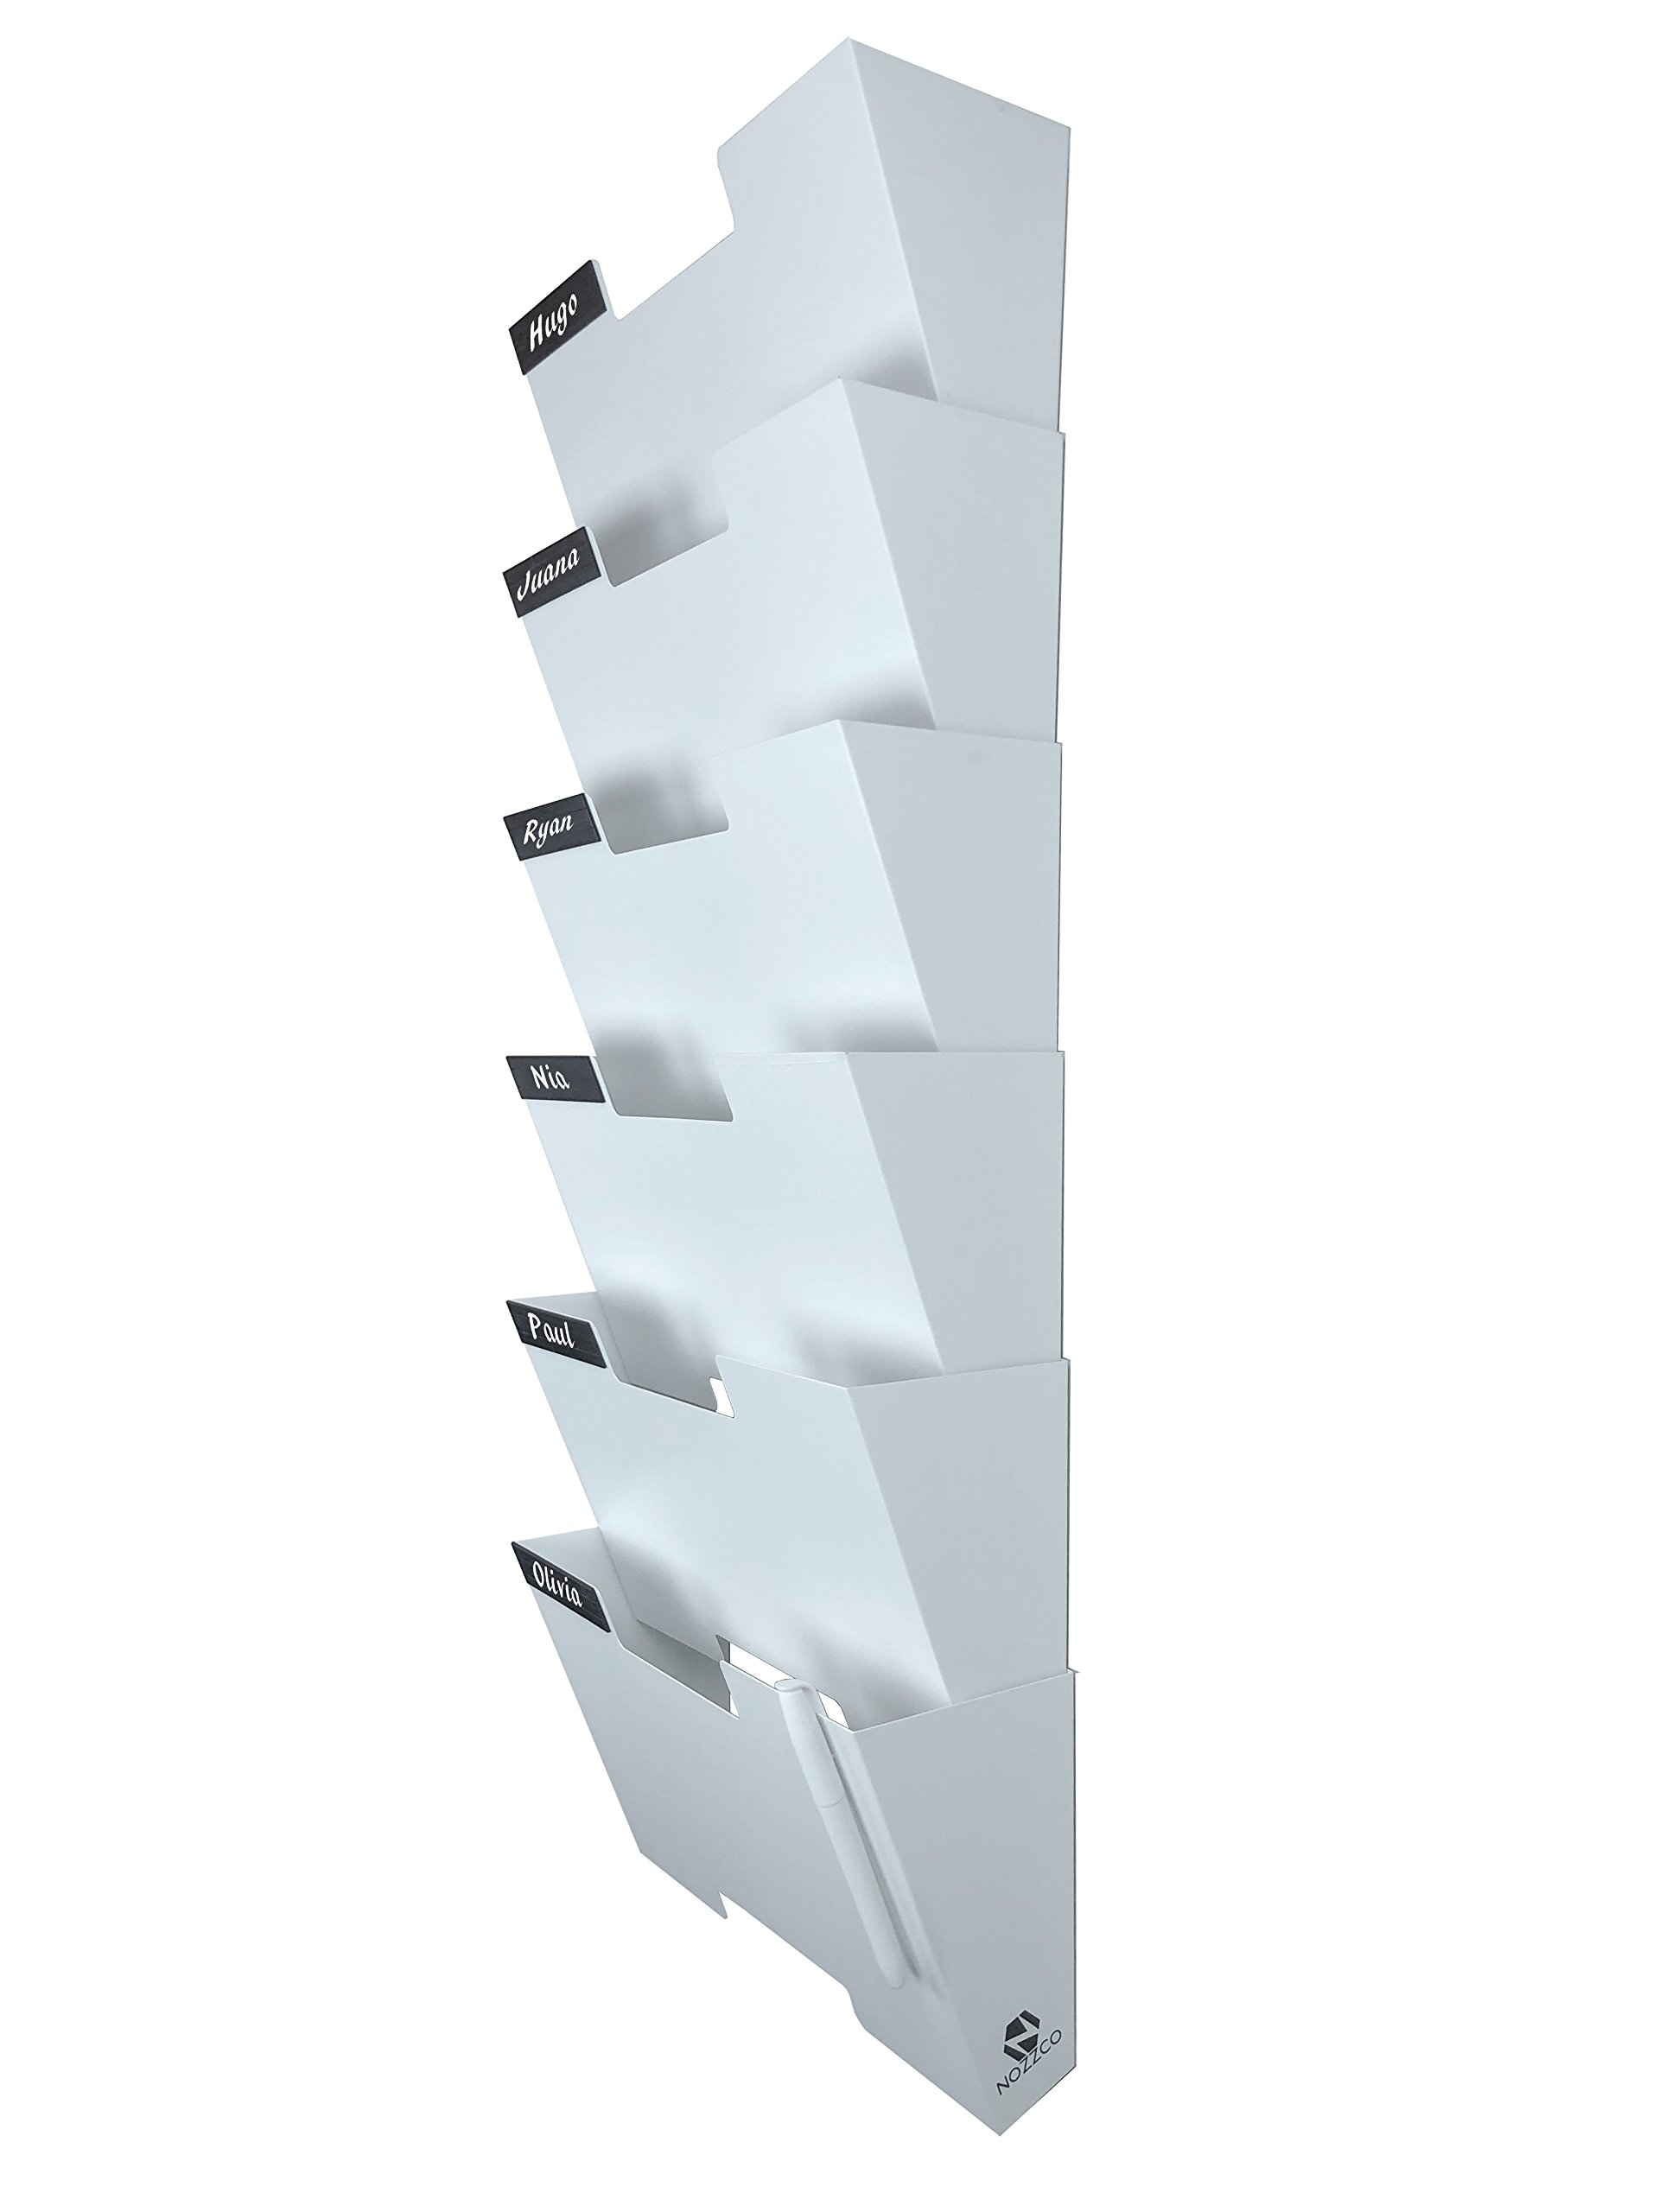 White Wall Mount Hanging File Holder Organizer 6 Pack Durable Steel Rack, Solid, Sturdy and Wide for Letters, Files, Magazines and More Organize The Desktop, Declutter Your Office Nozzco by Z N NOZZCO